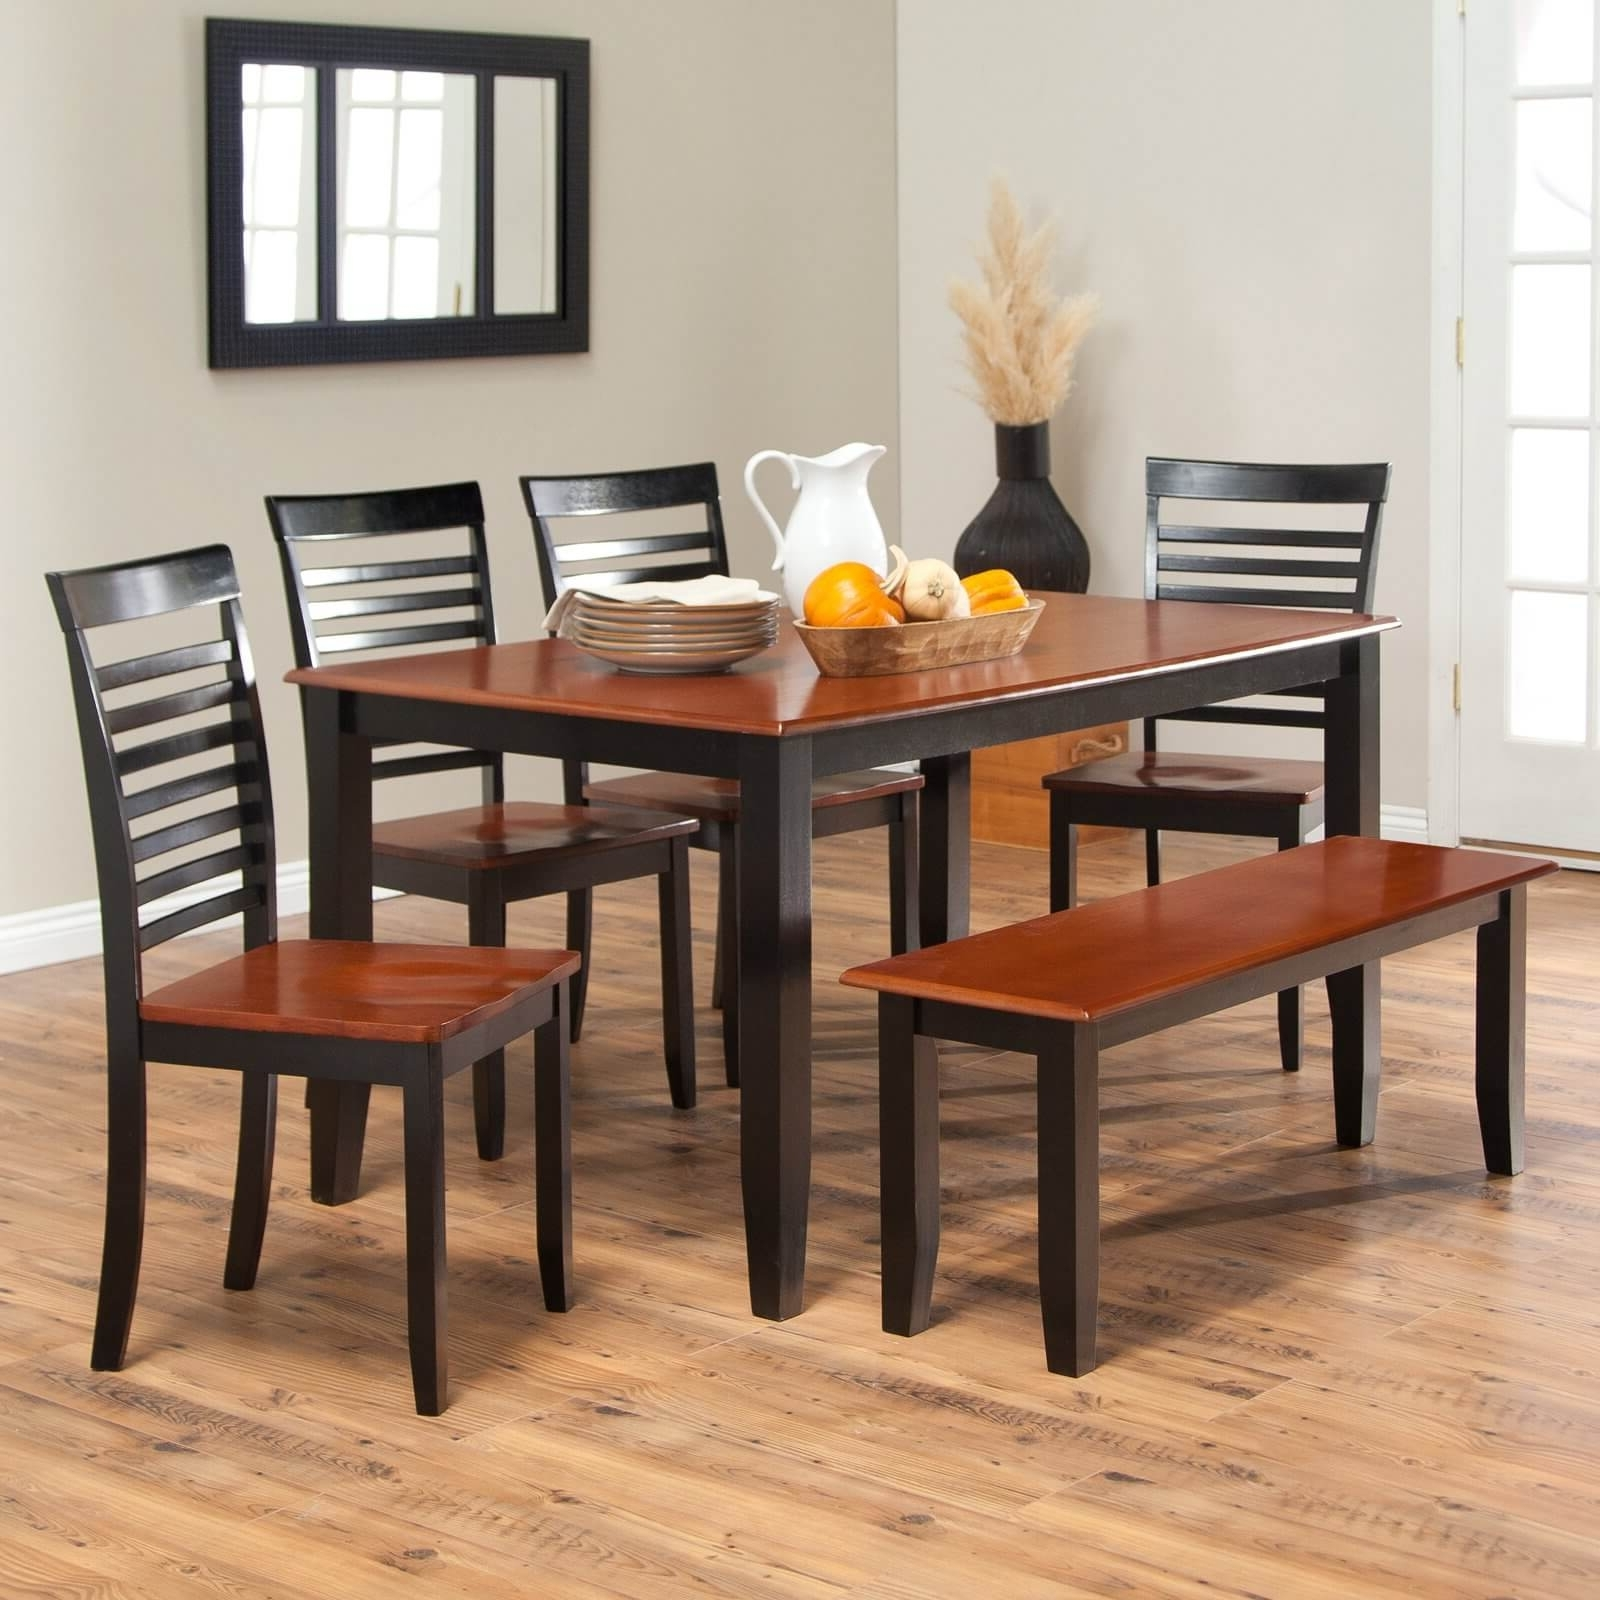 Favorite 26 Dining Room Sets (Big And Small) With Bench Seating (2018) With Small Dining Tables And Chairs (View 7 of 25)